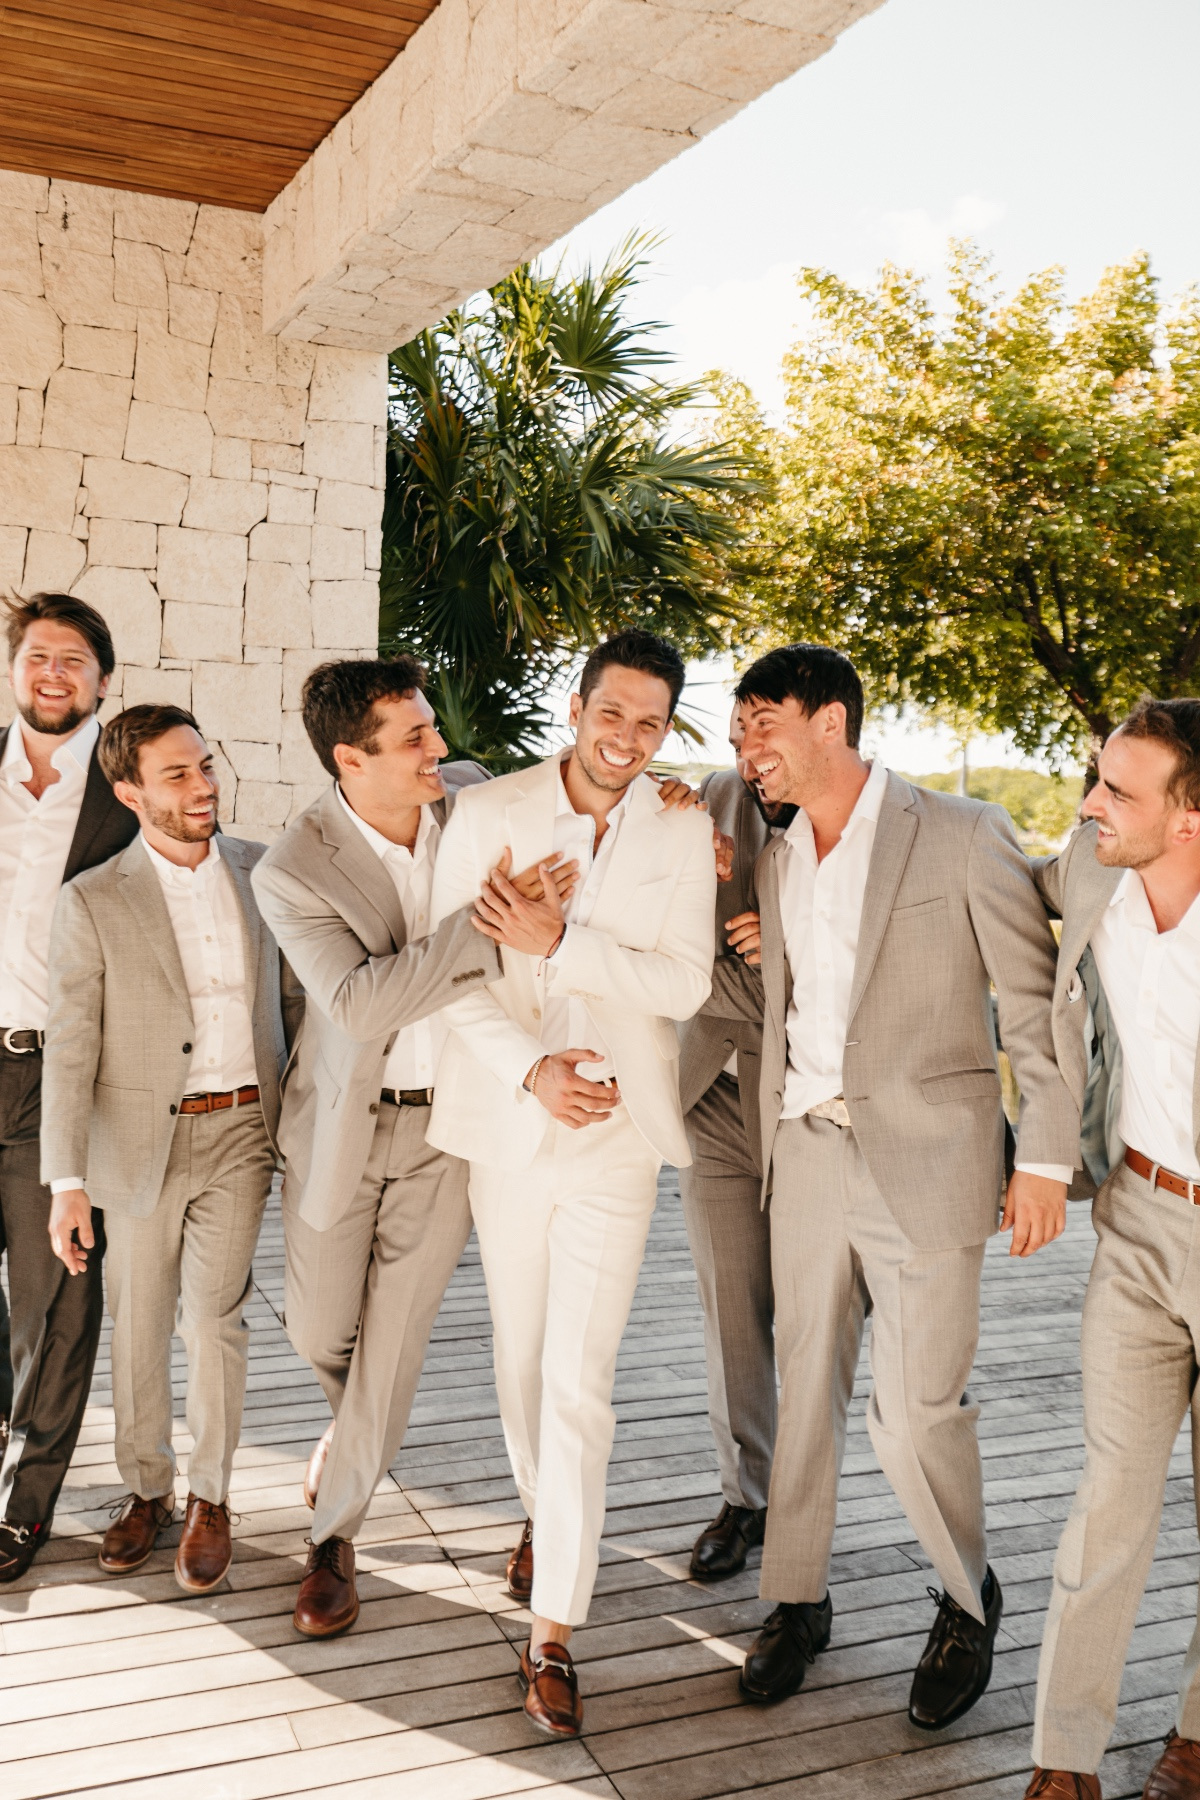 Groomsmen in linen suits with white shirts and brown shoes